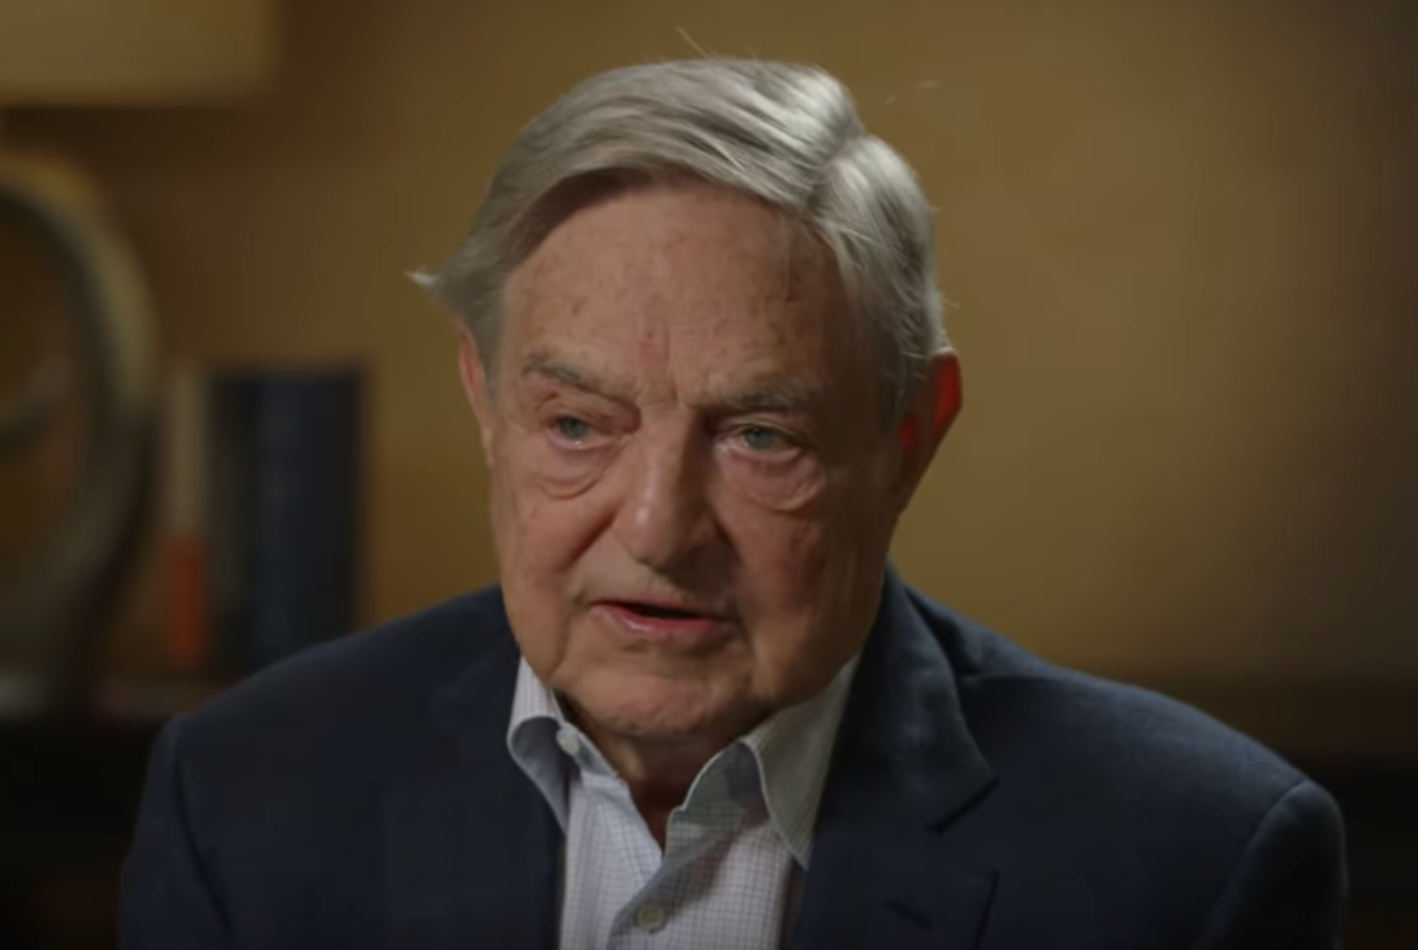 WashPost Cites Soros-Affiliated Org to Say Words like 'Kungflu' Are Racist